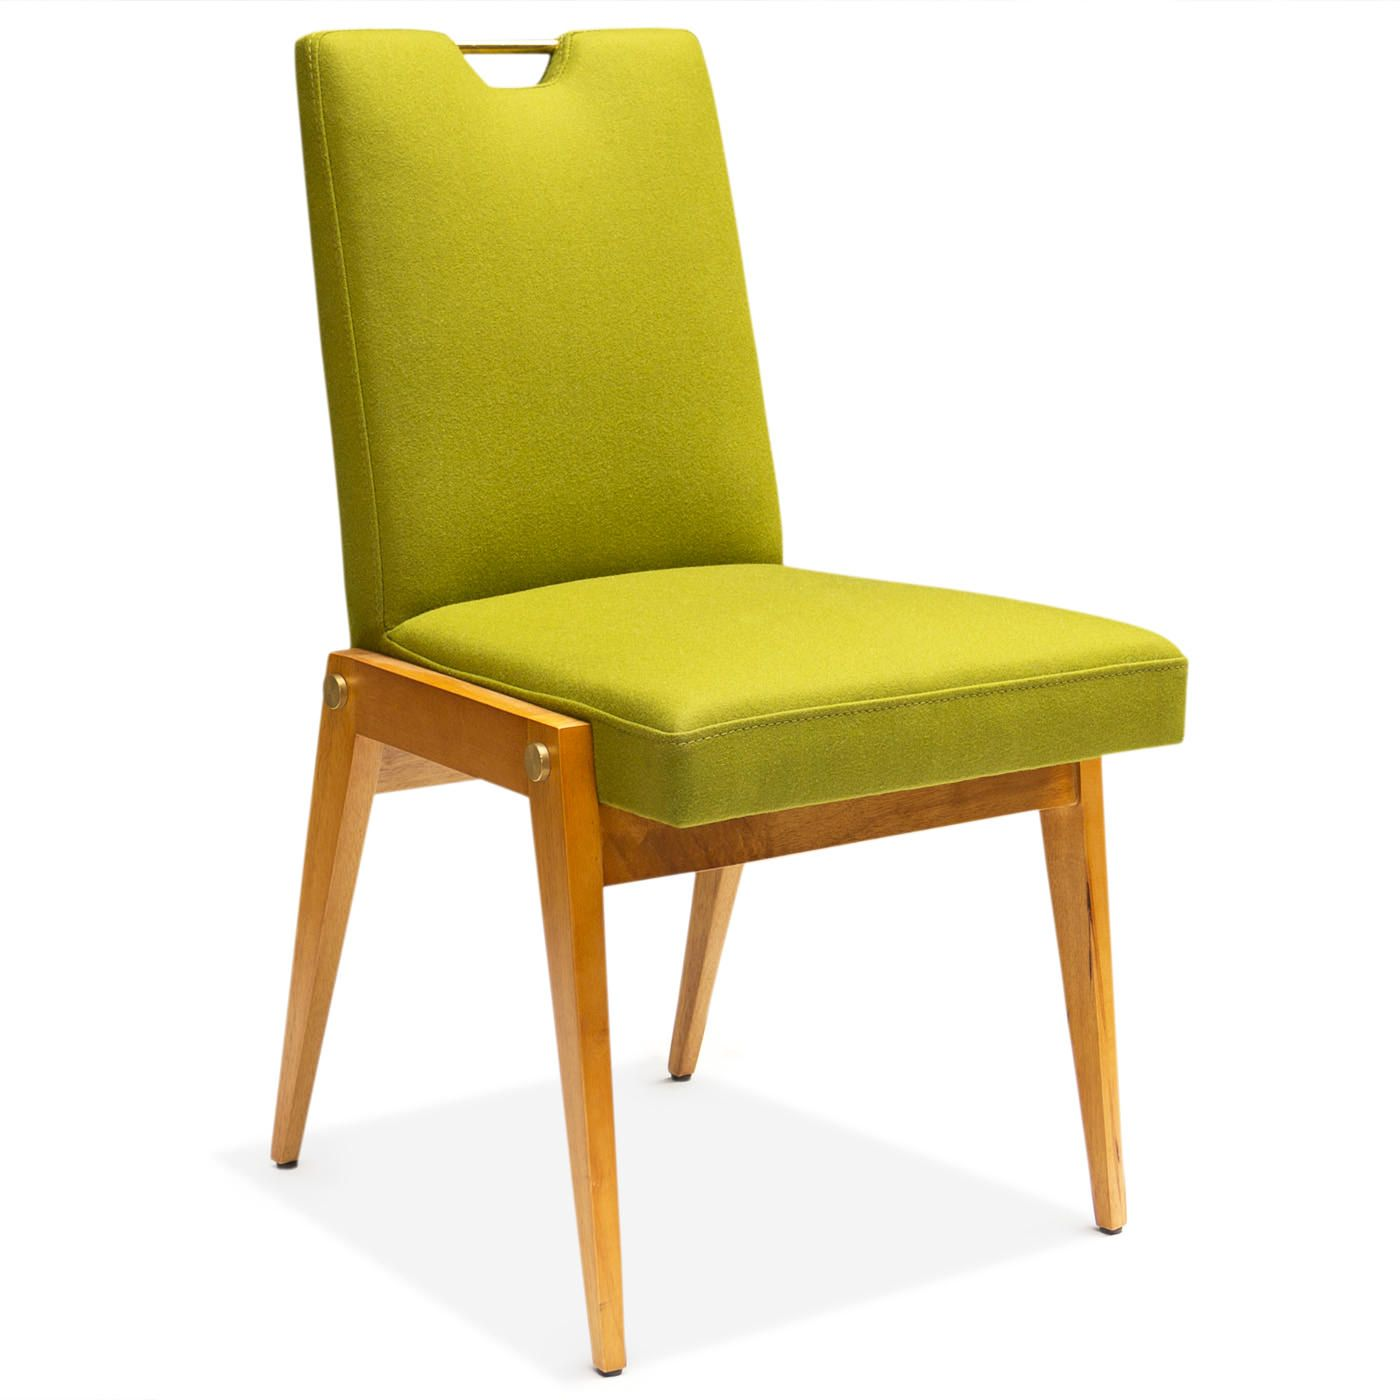 Bebo Stoelen Amsterdam Side Dining Chair Chairs